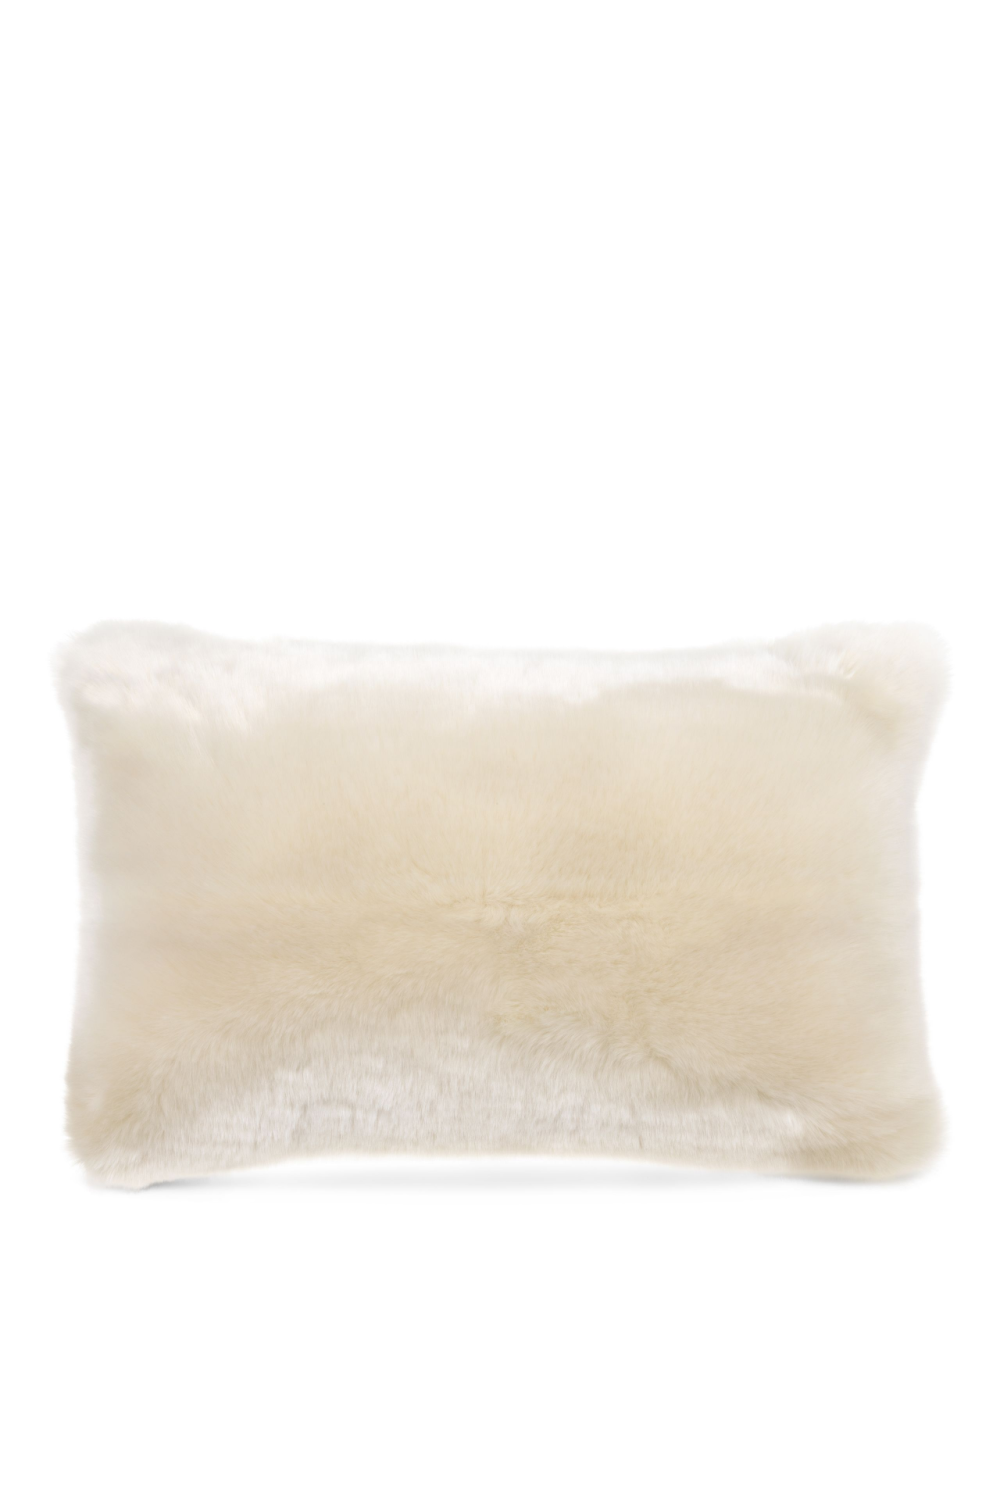 White Fur Cushion | Eichholtz Alaska